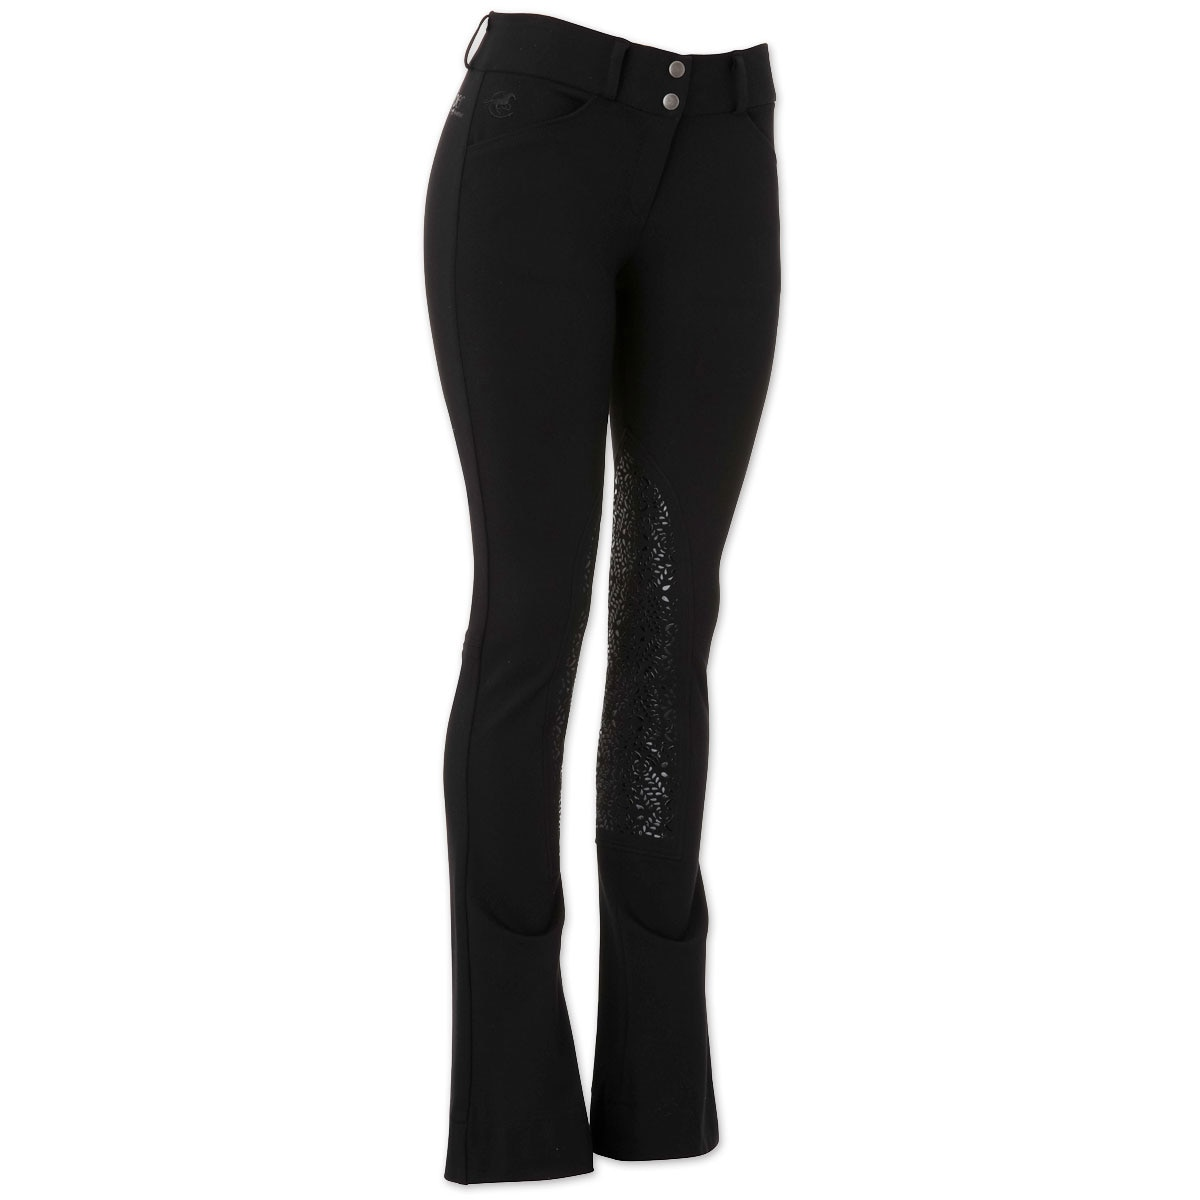 Piper Knit Breeches by SmartPak - Low Rise Boot Cut